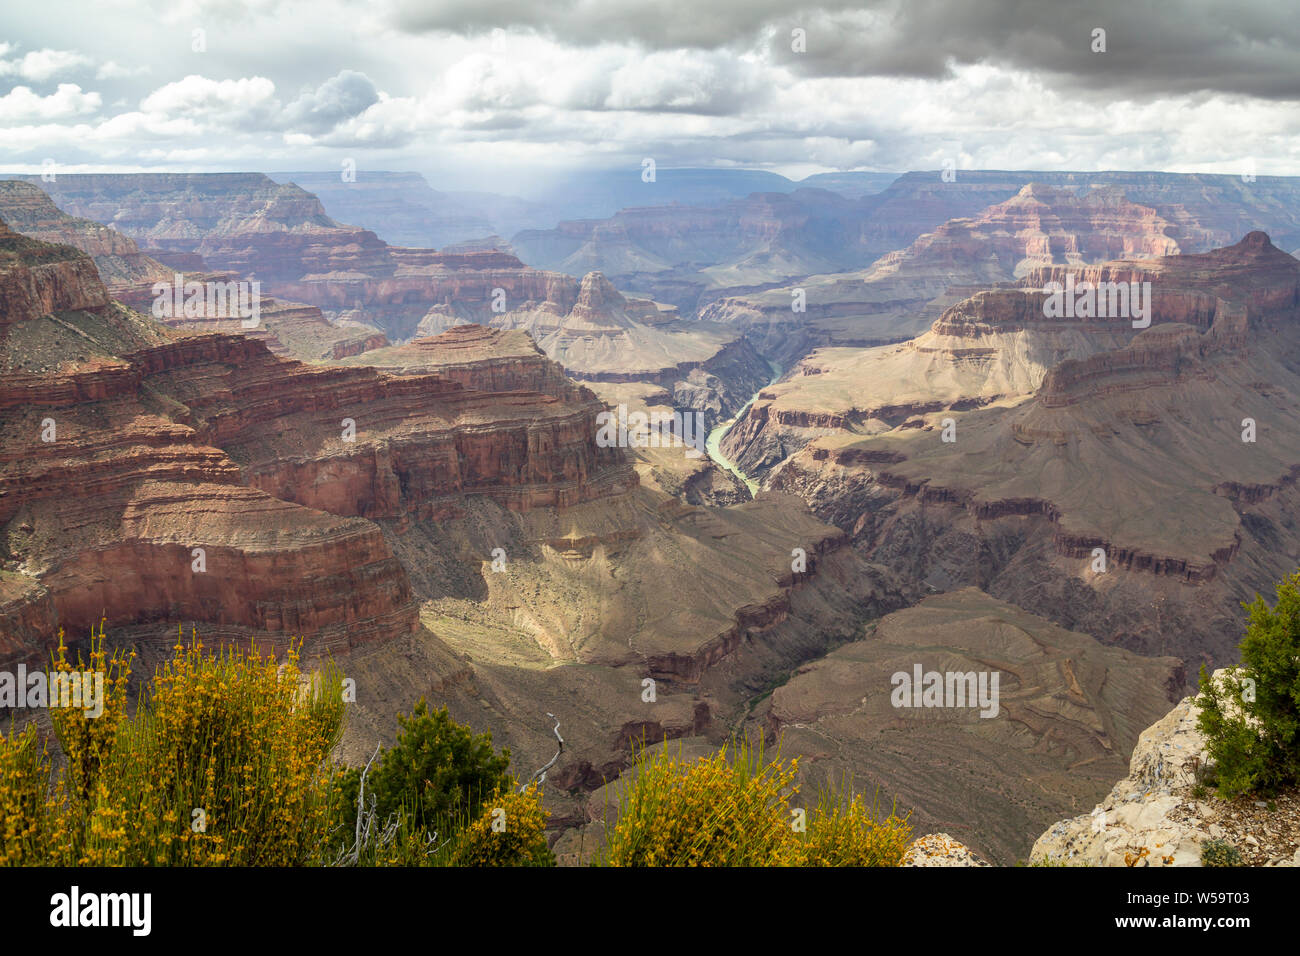 Colorado river crossing the eroded landscape of Grand Canyon, Arizona, United States Stock Photo